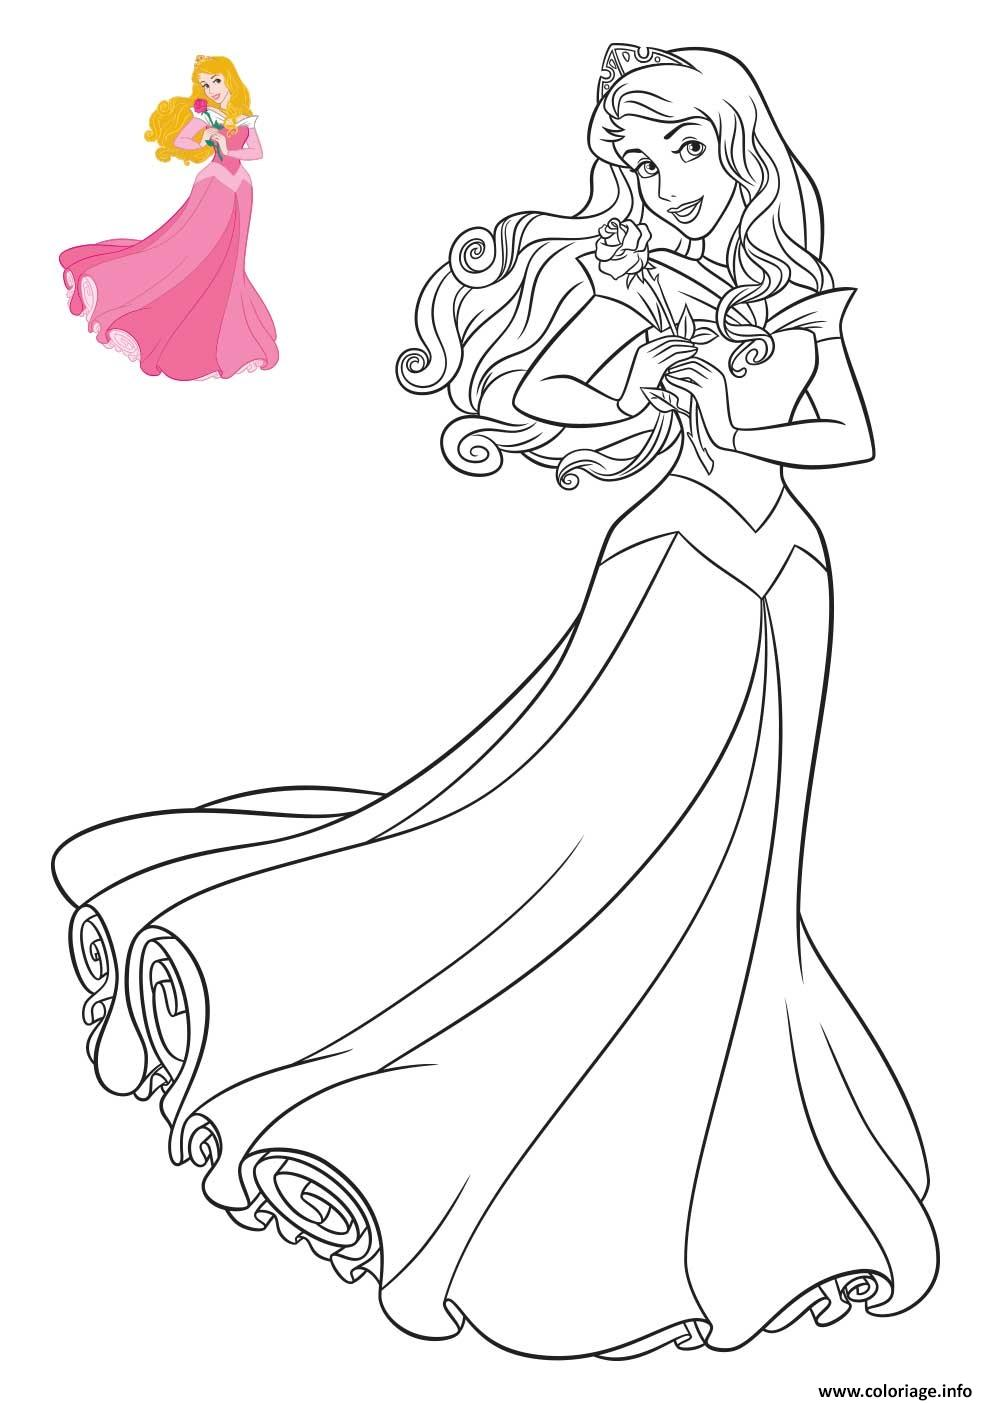 Coloriage princesse disney aurore - Coloriage disney ...